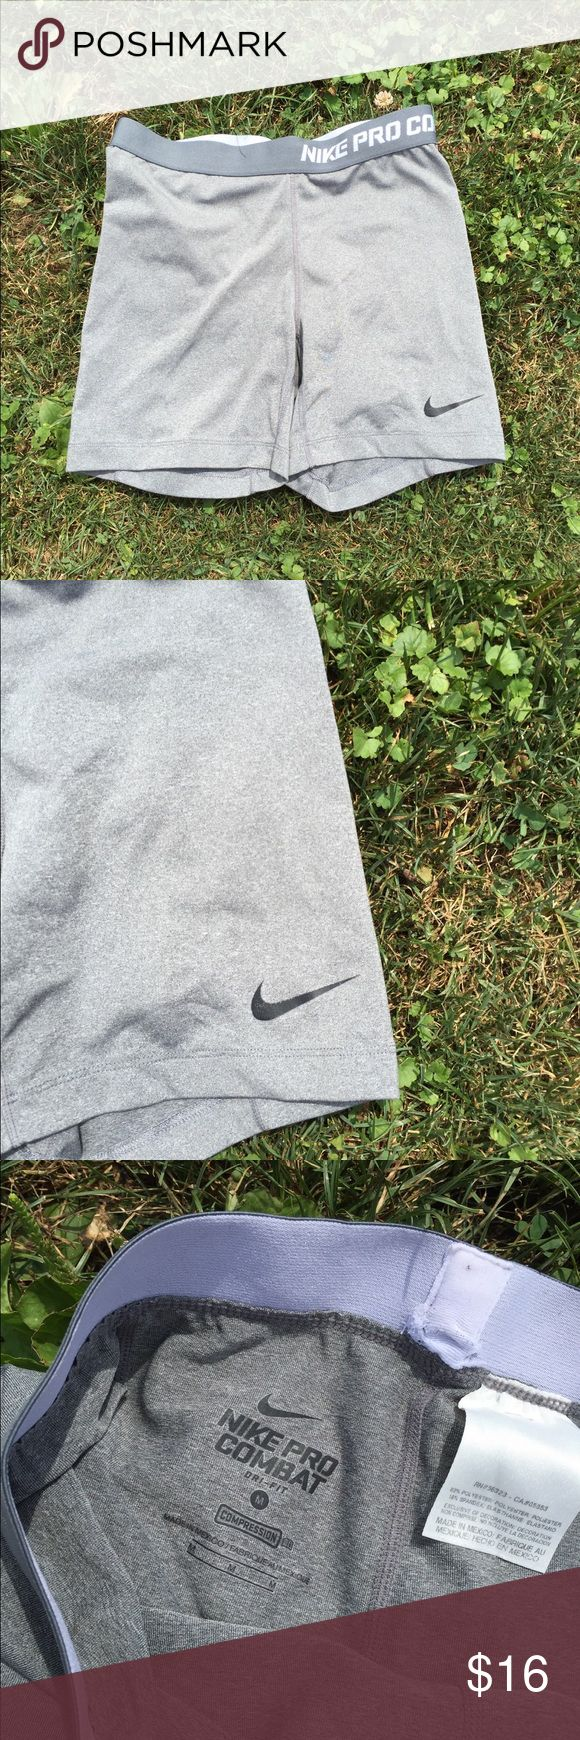 Nike Pro Combat Athletic Shorts Size Medium Size medium. Super gently preowned. Be sure to view the other items in our closet. We offer  women's, Mens and kids items in a variety of sizes. Bundle and save!! We love reasonable offers!! Thank you for viewing our item!! Nike Shorts